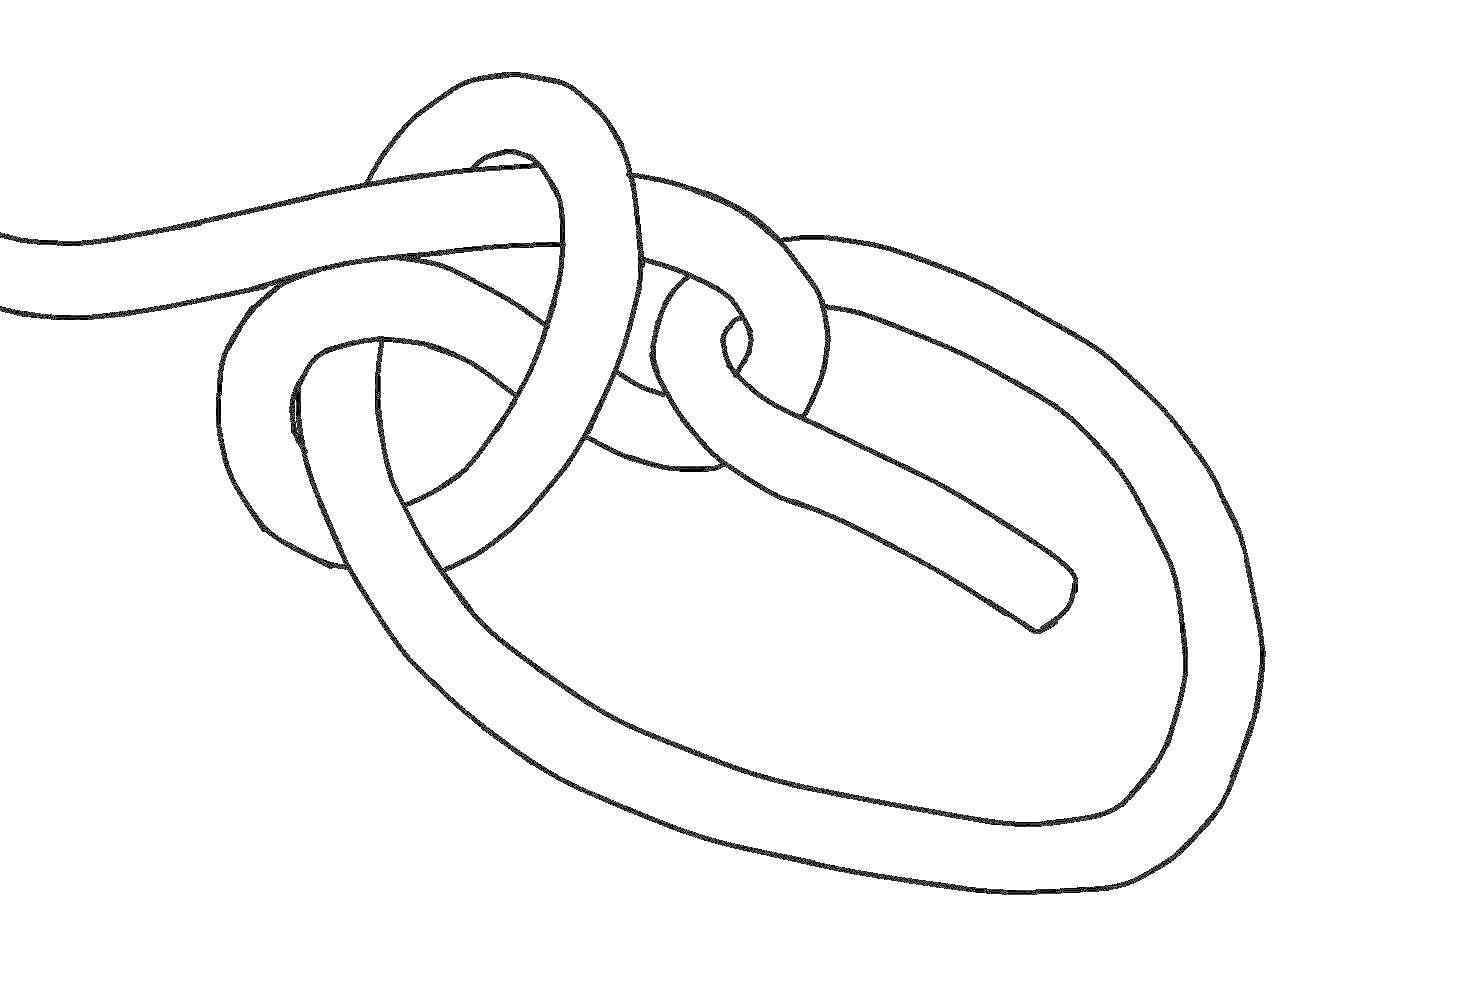 new approaches with knot tying  the bowline knot from a